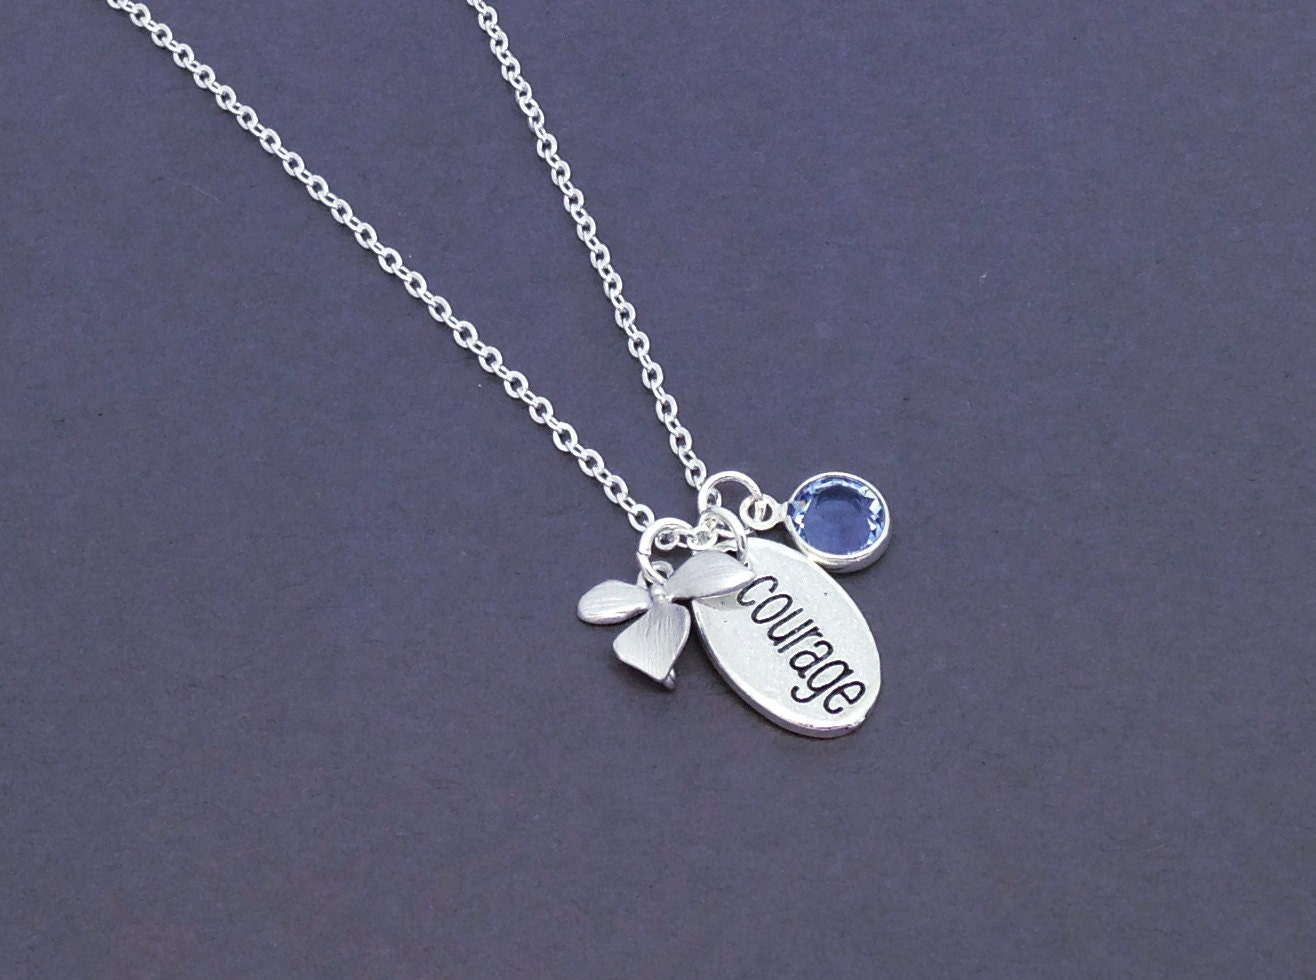 courage necklace graduation necklace courage jewelry